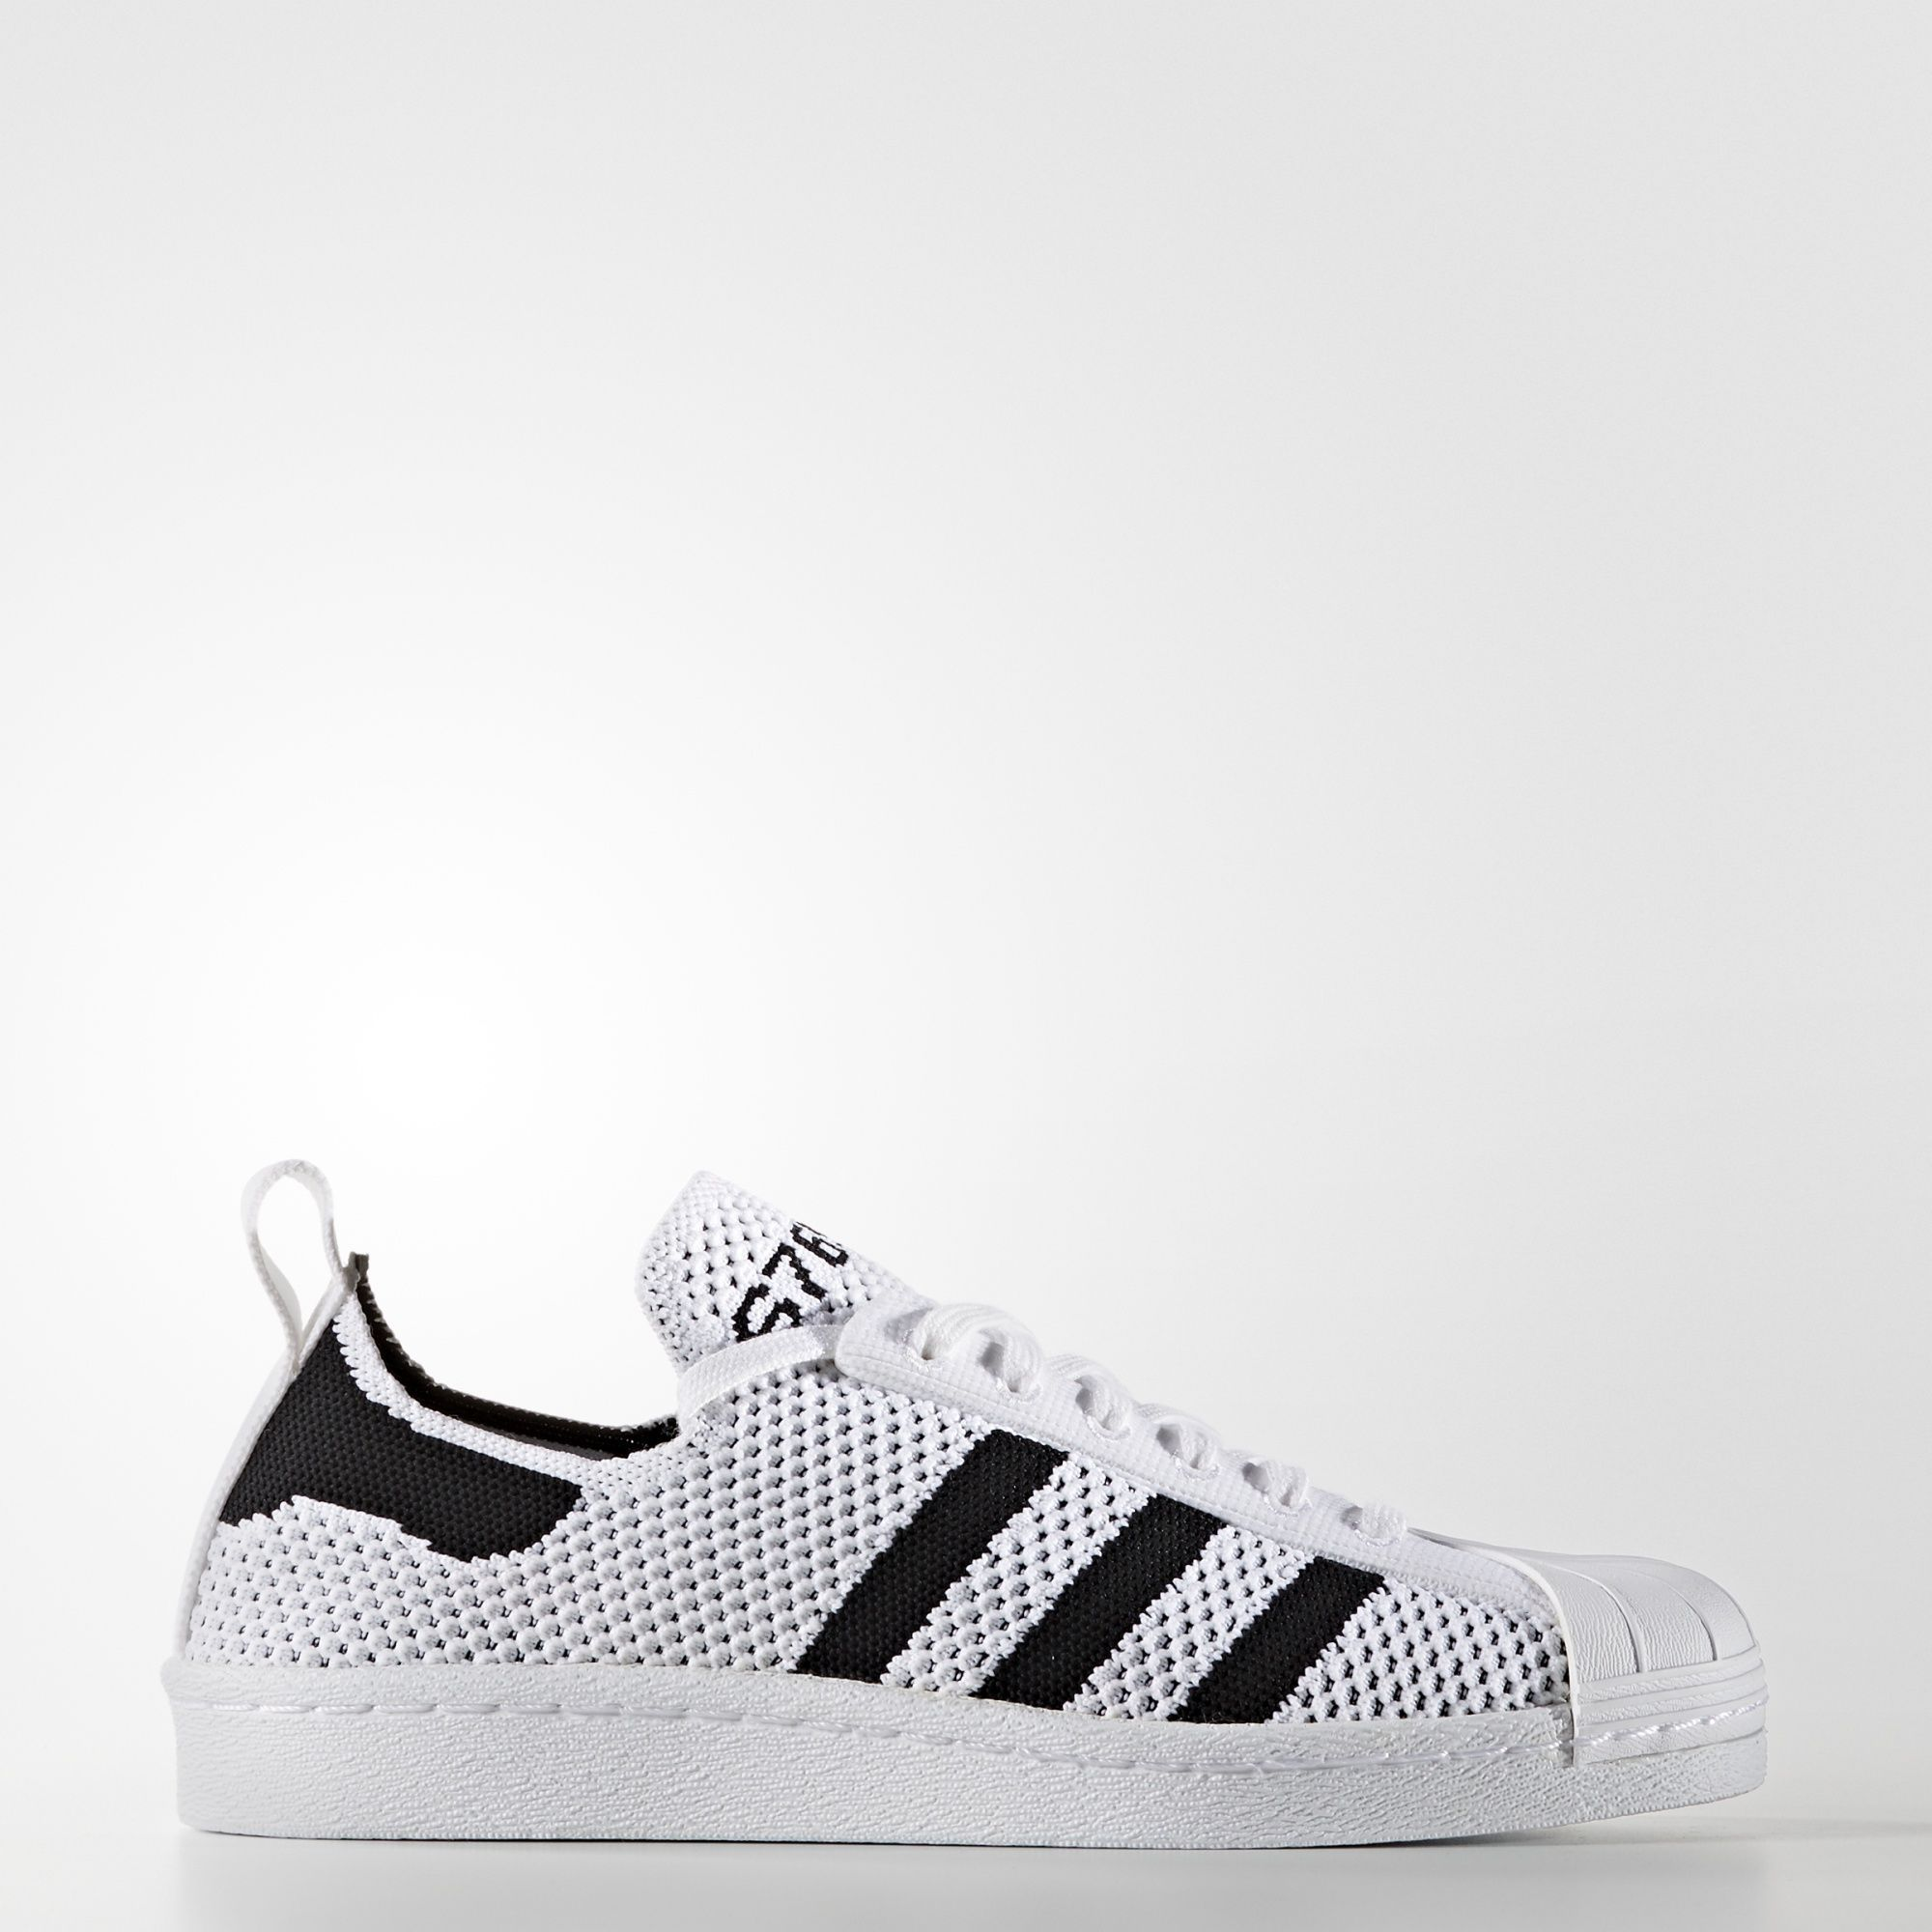 Adidas superstar primeknit Donna cheap cheap >il più grande off39%